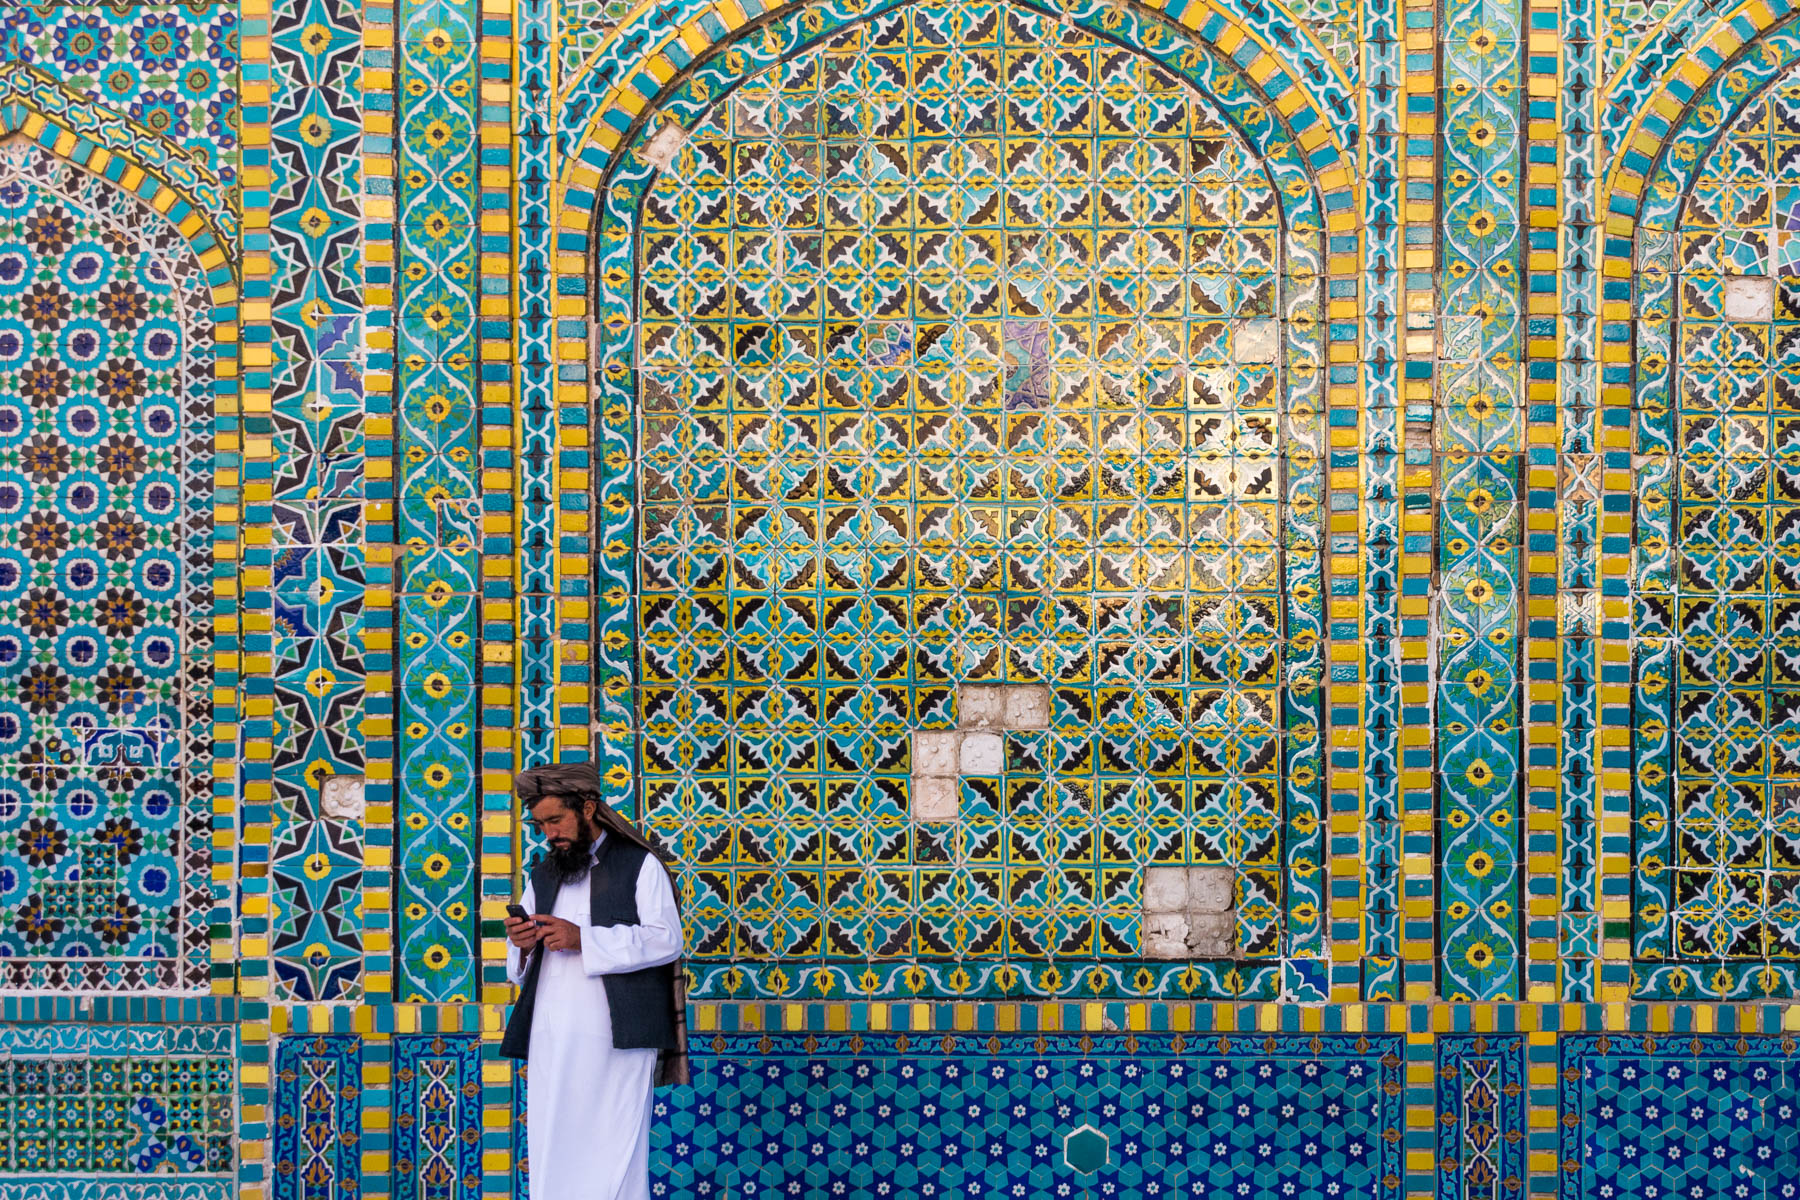 Photos of Mazar-i-Sharif, Afghanistan - Man checking phone in front of the mosaic walls of the Blue Mosque - Lost With Purpose